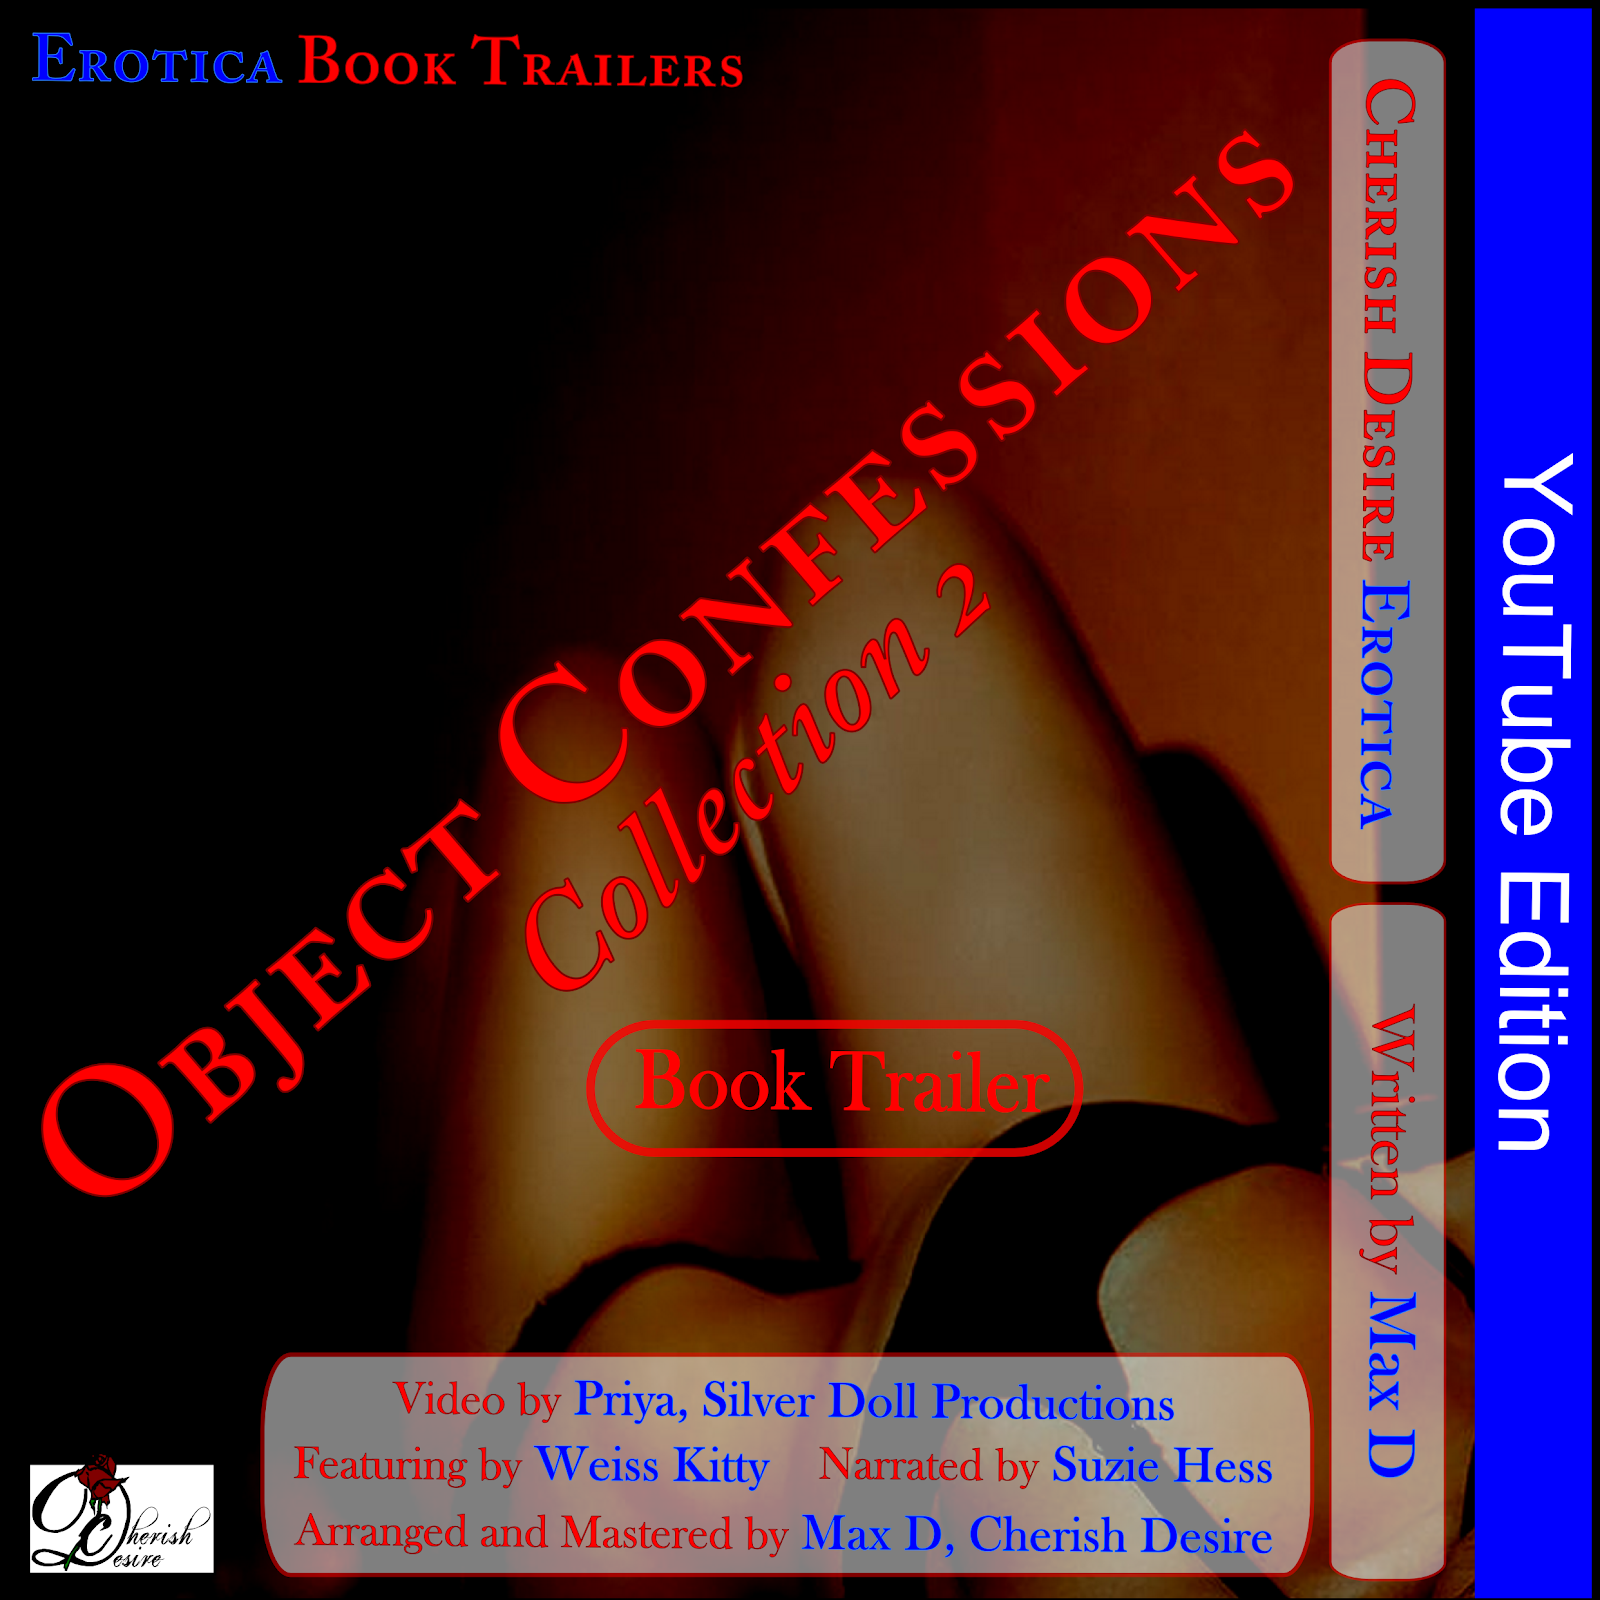 Cherish Desire Singles: Object Confessions Collection 2, YouTube Book Trailer, Max D, erotica